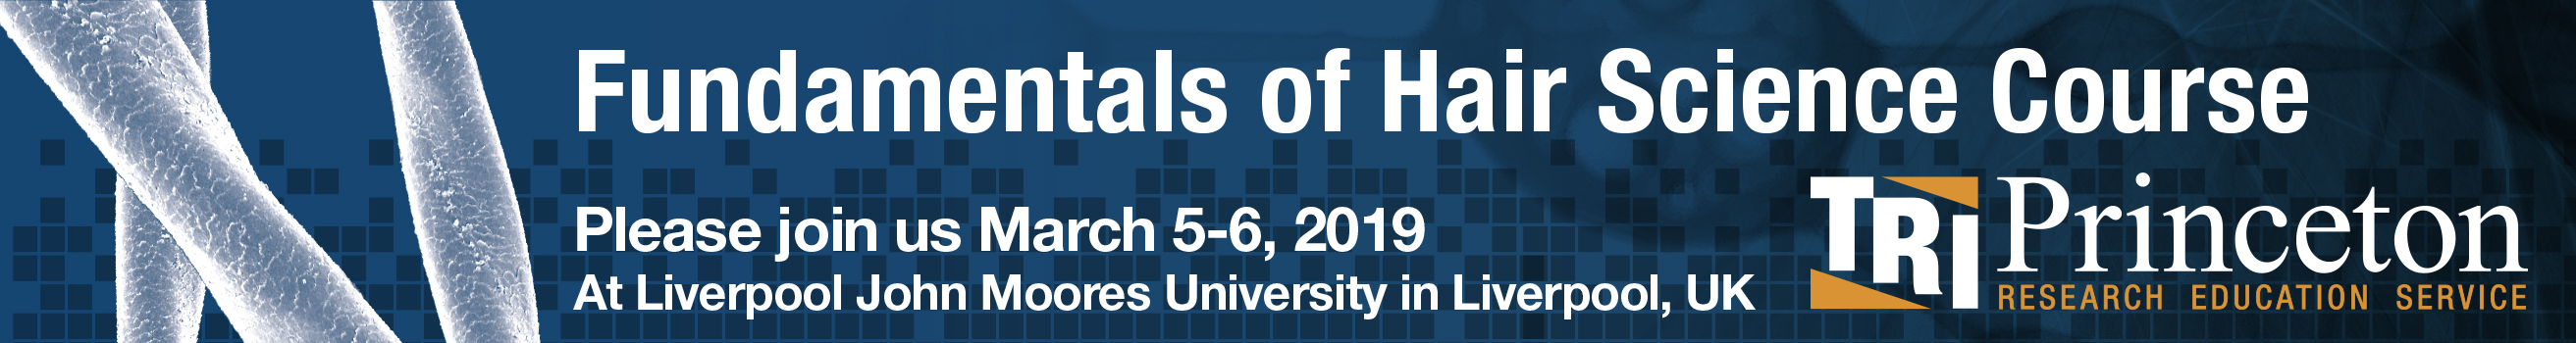 Fundamentals of Hair Science to be held March 5-6, 2019 in Liverpool, UK